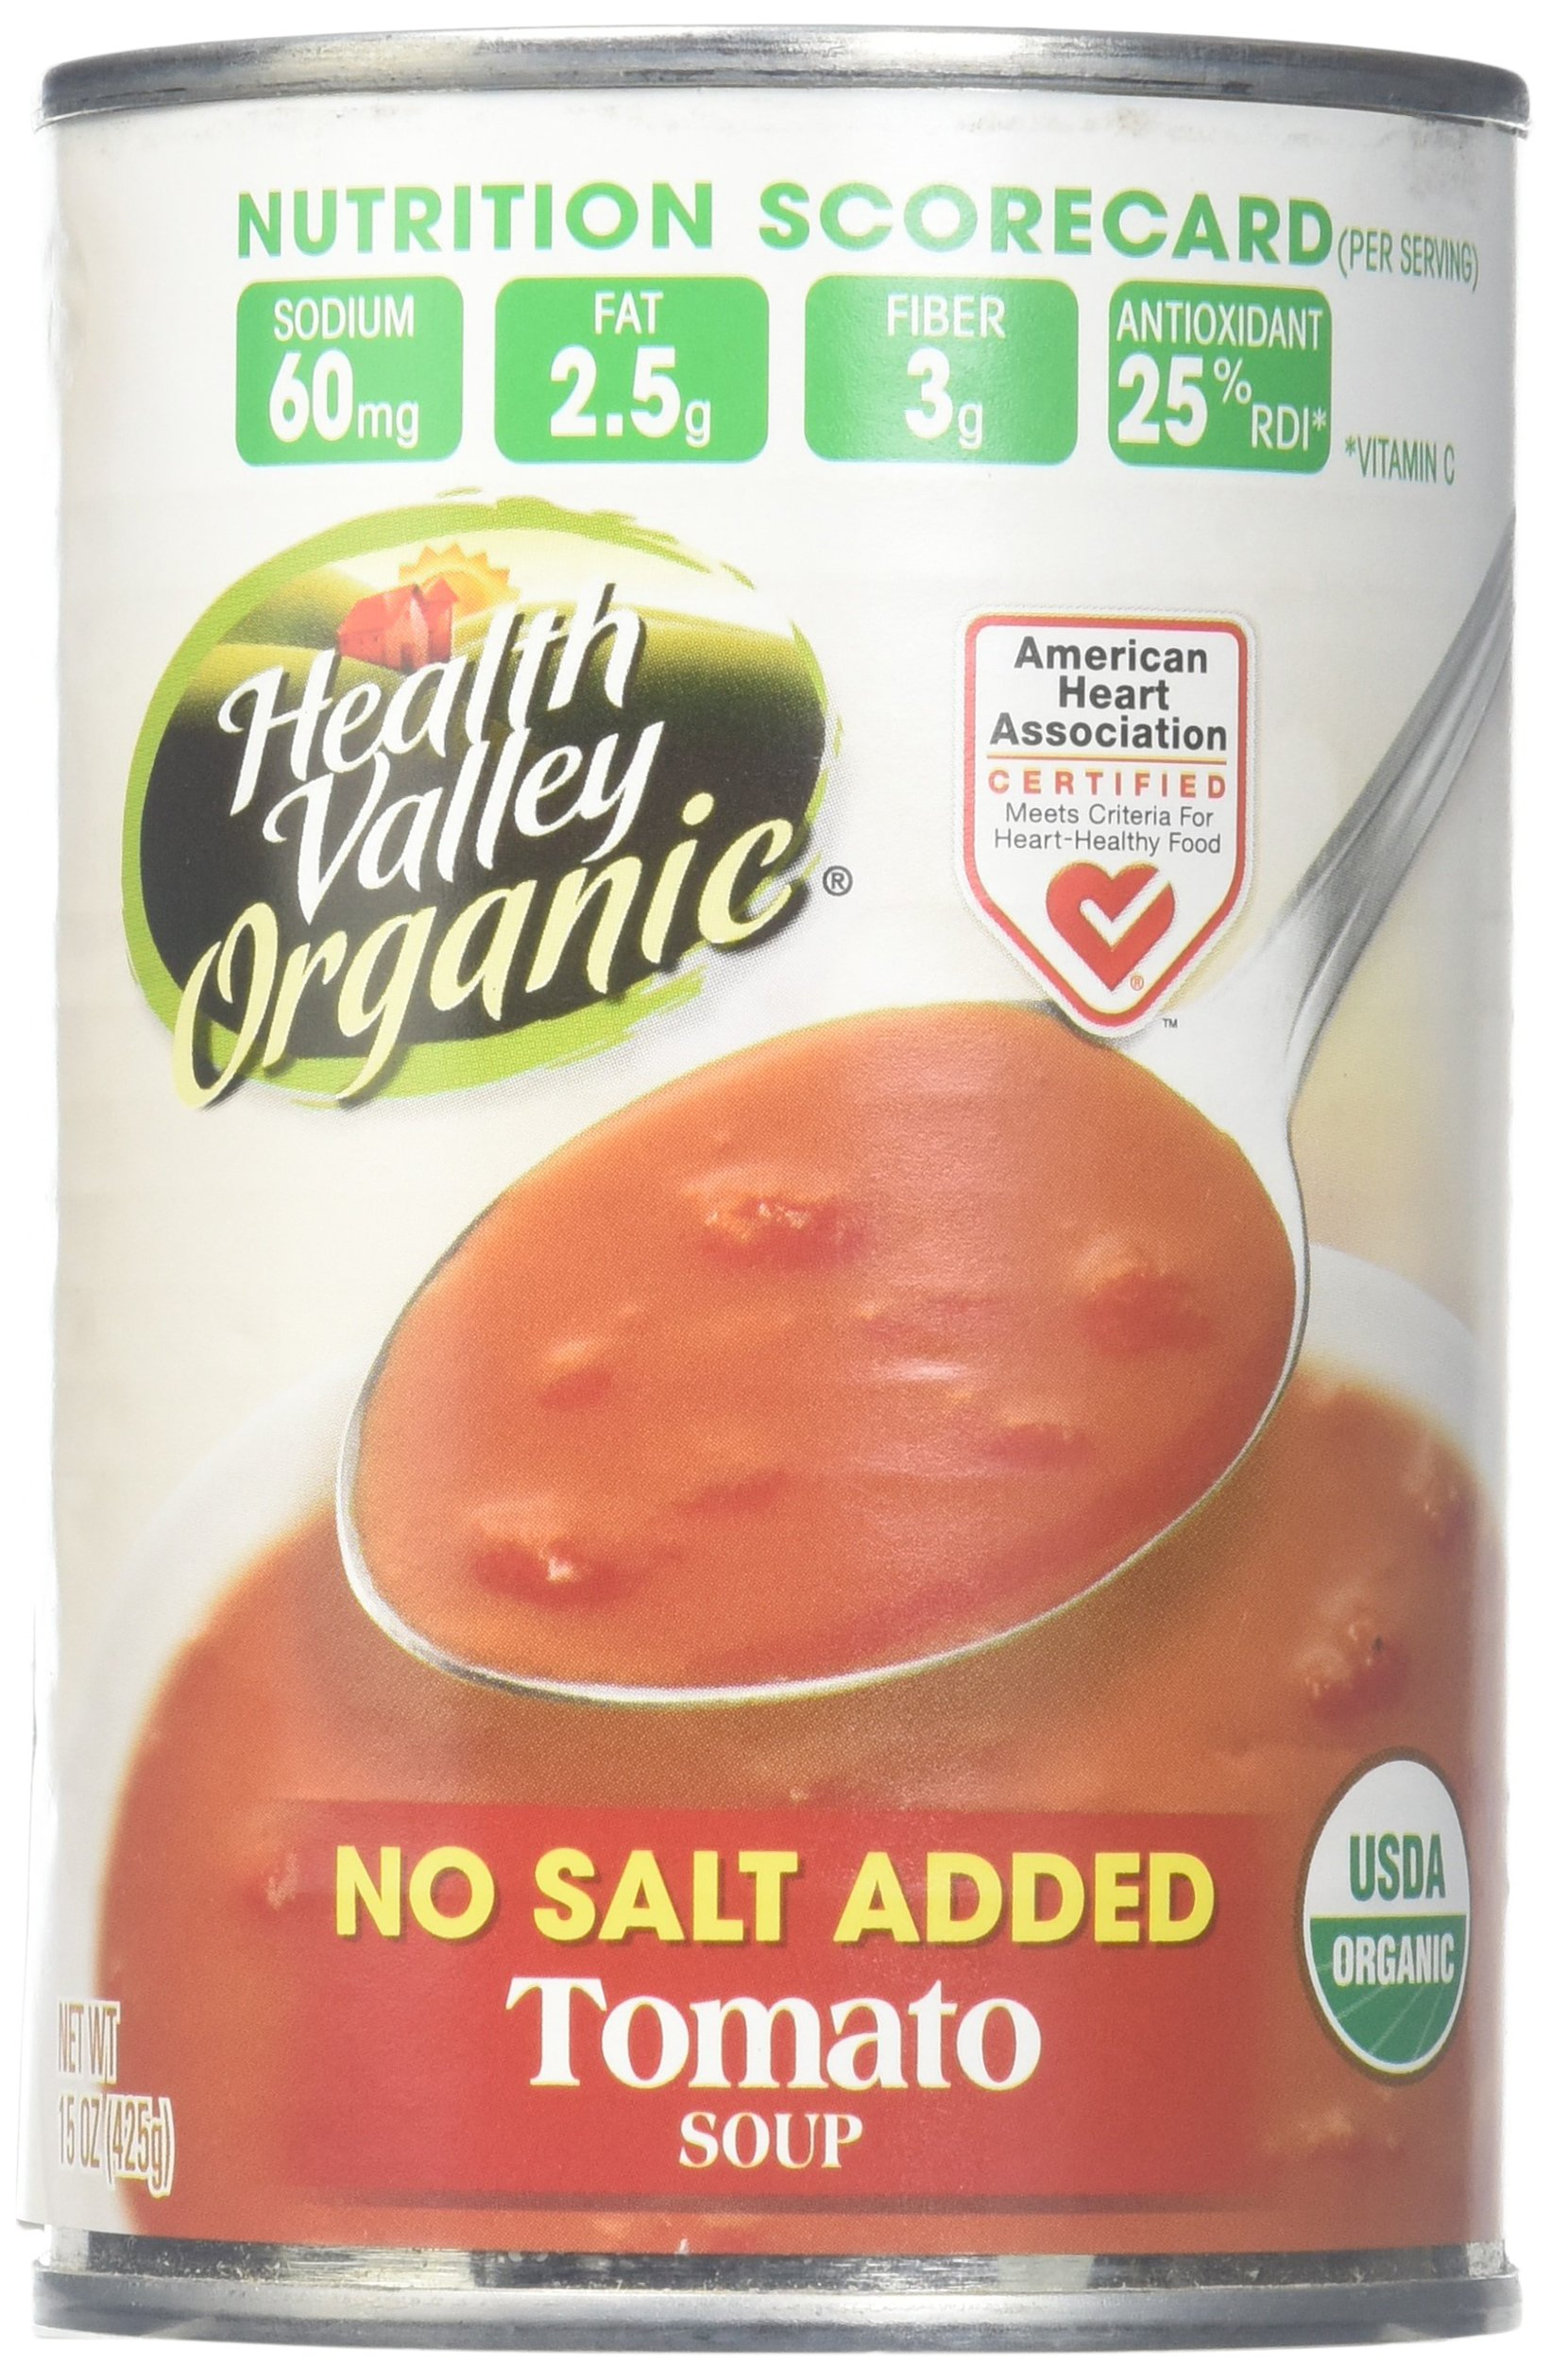 Health Valley Organic Tomato Soup, No Salt, 15 oz